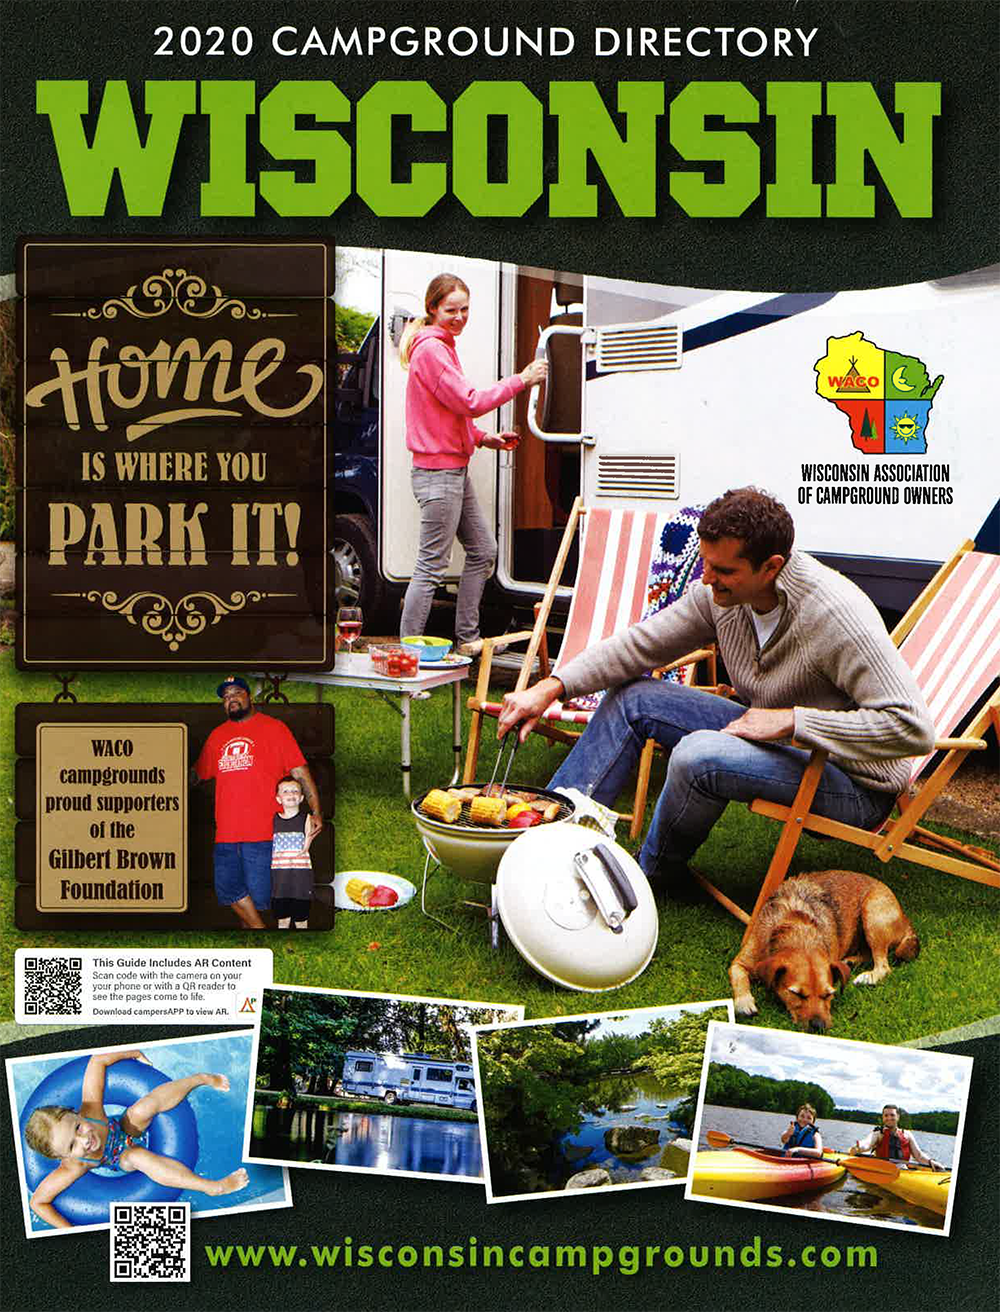 2020 Wisconsin Campground Directory